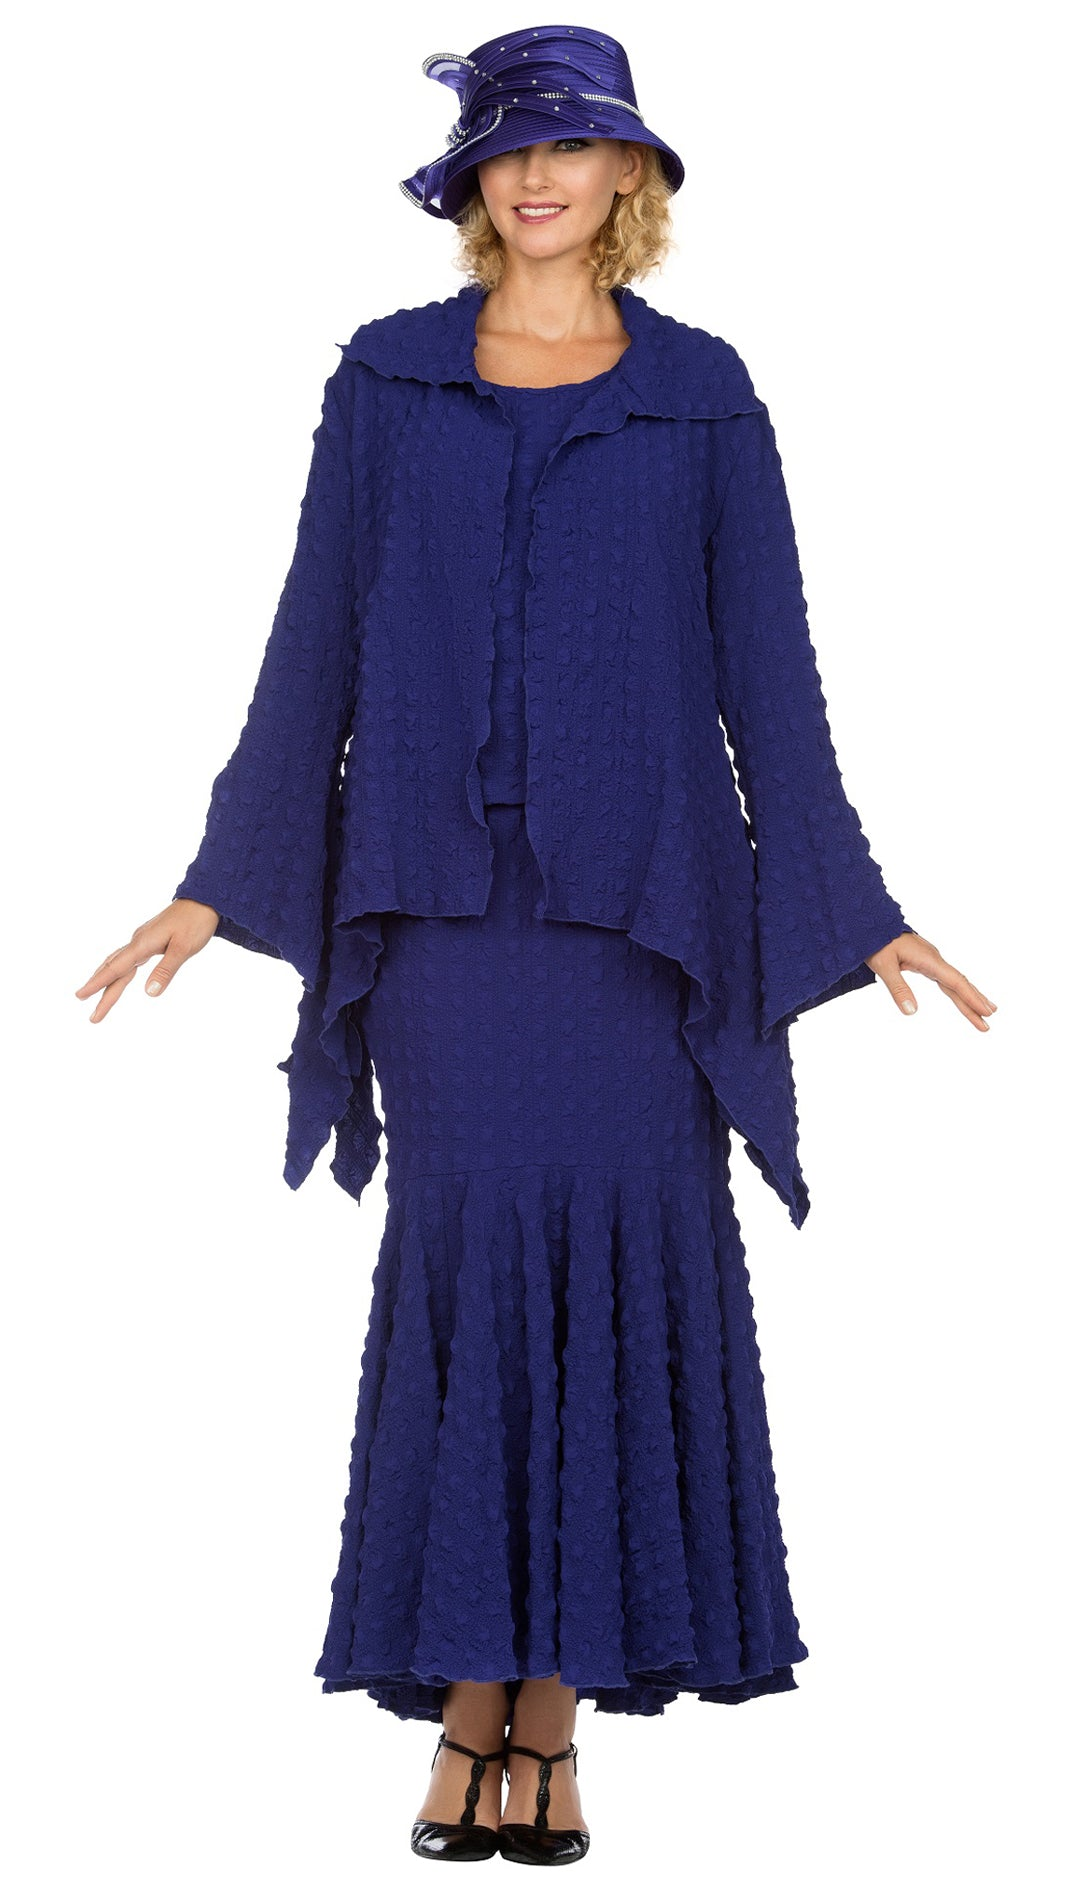 Giovanna Suit 0940-Purple - Church Suits For Less